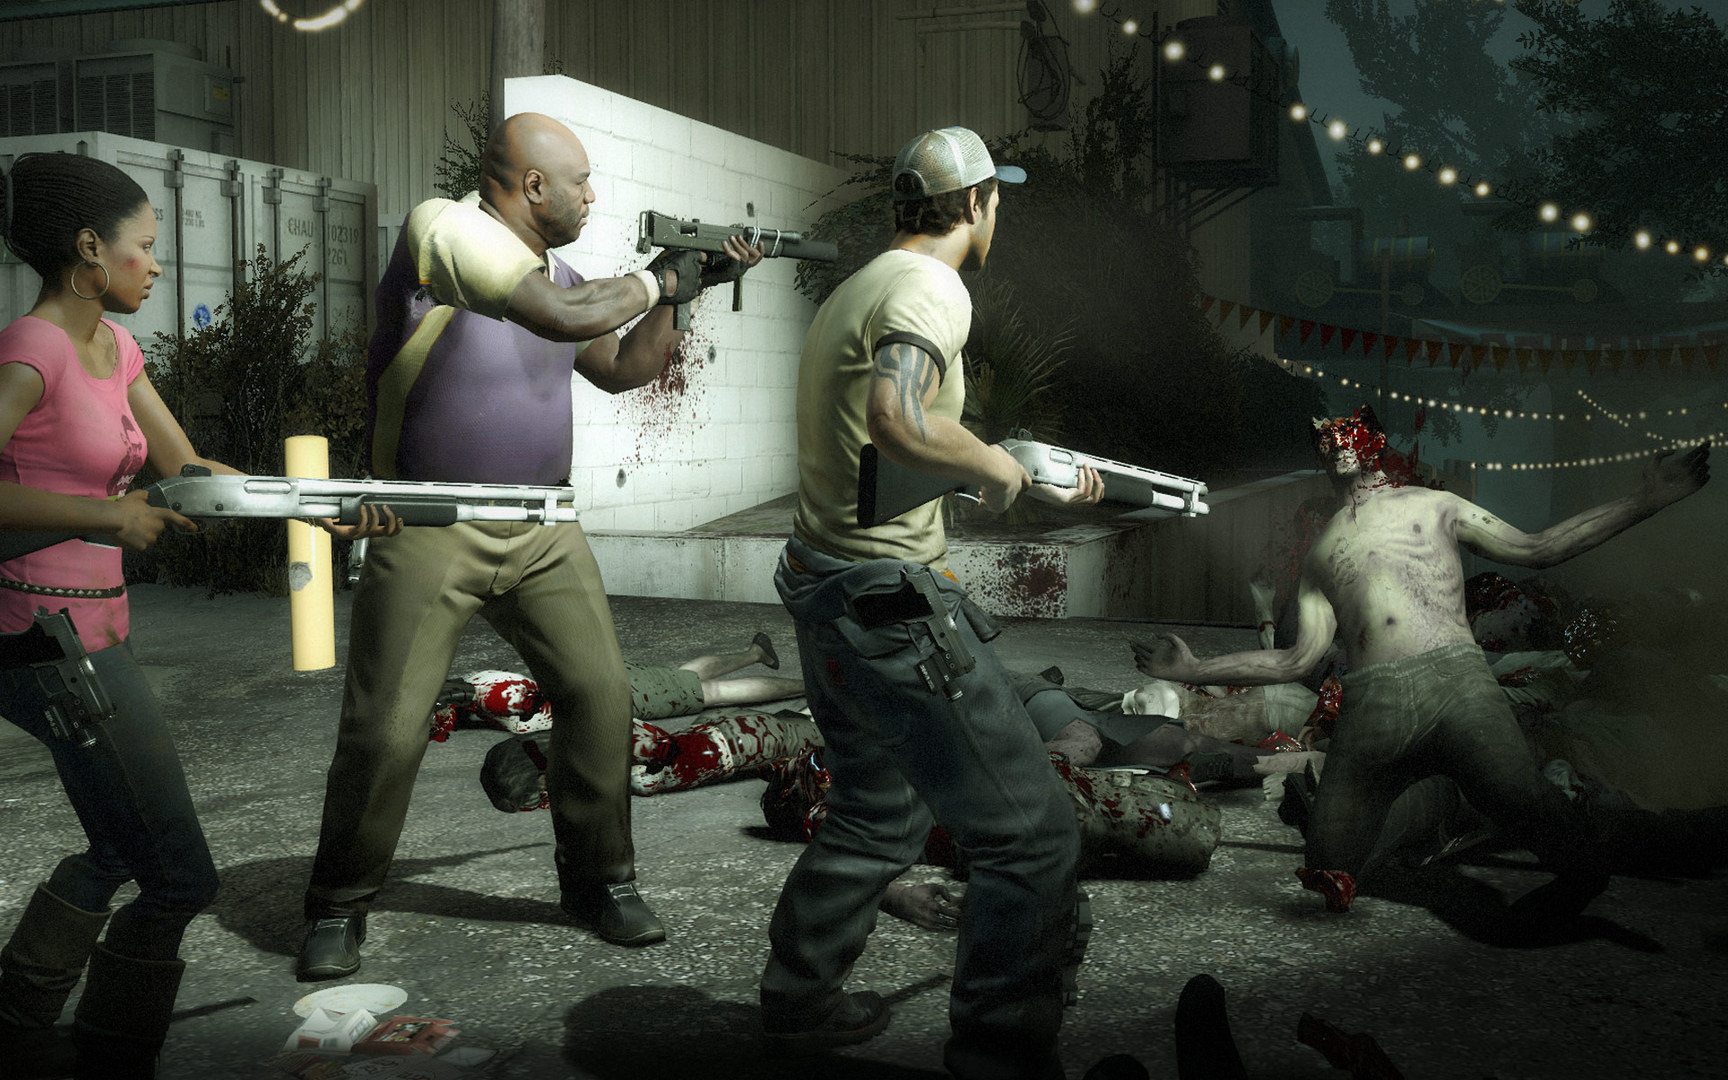 Valve Confirms 'Left 4 Dead' VR Game Not in Active Development - Road to VR